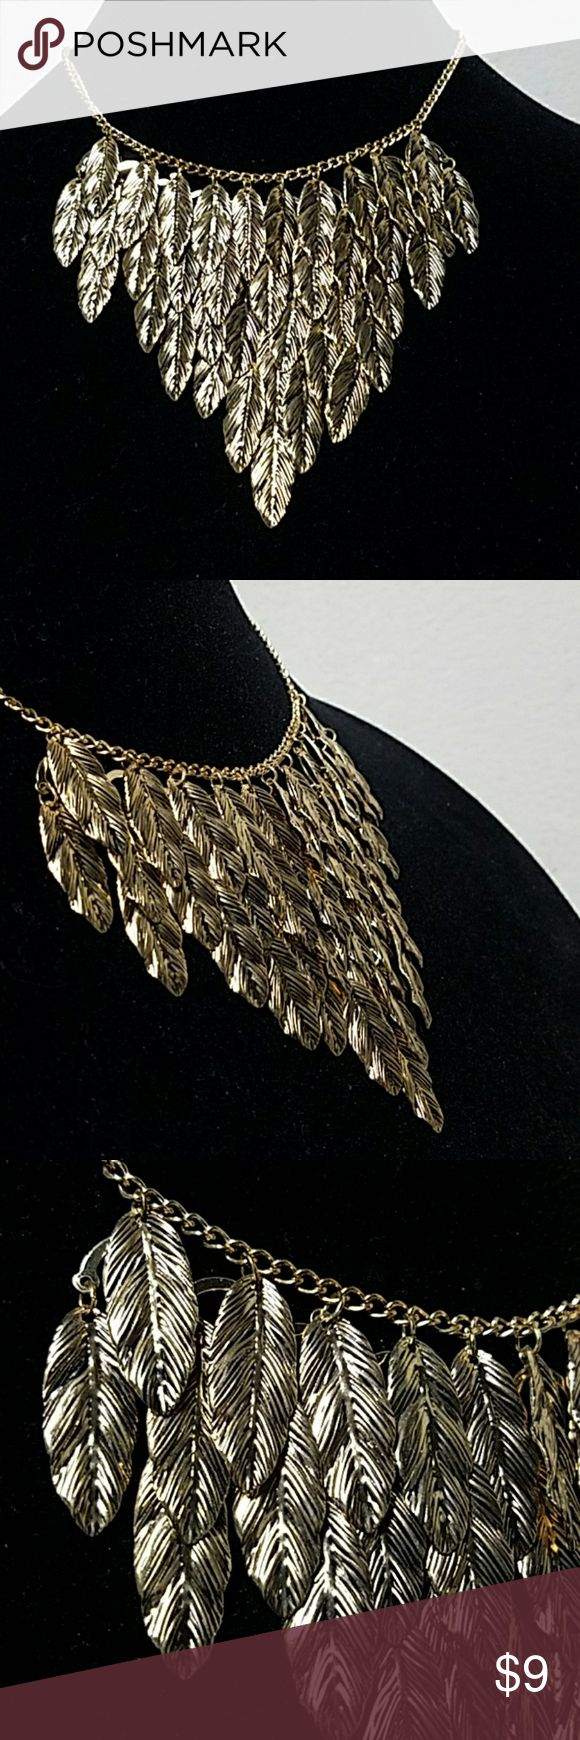 """Antiqued Gild Feather Cluster Collar/Choker 14"""" Gold Chain w/Lobster Closure. 3 inches of (1"""") Antiqued Gold Feathers Form This Bib Style Necklace. Item#N958 *ALL JEWELRY IS NWT/NWOT/UNUSED VINTAGE* 25% OFF BUNDLES OF 3 OR MORE ITEMS! ALL REASONABLE OFFERS ACCEPTED!BUY WITH CONFIDENCE TOP 10% SELLER, FAST SHIPPING, 5 STAR RATING, FREE GIFT w/ MOST ORDERS! Jesi's Fashionz  Jewelry Necklaces"""